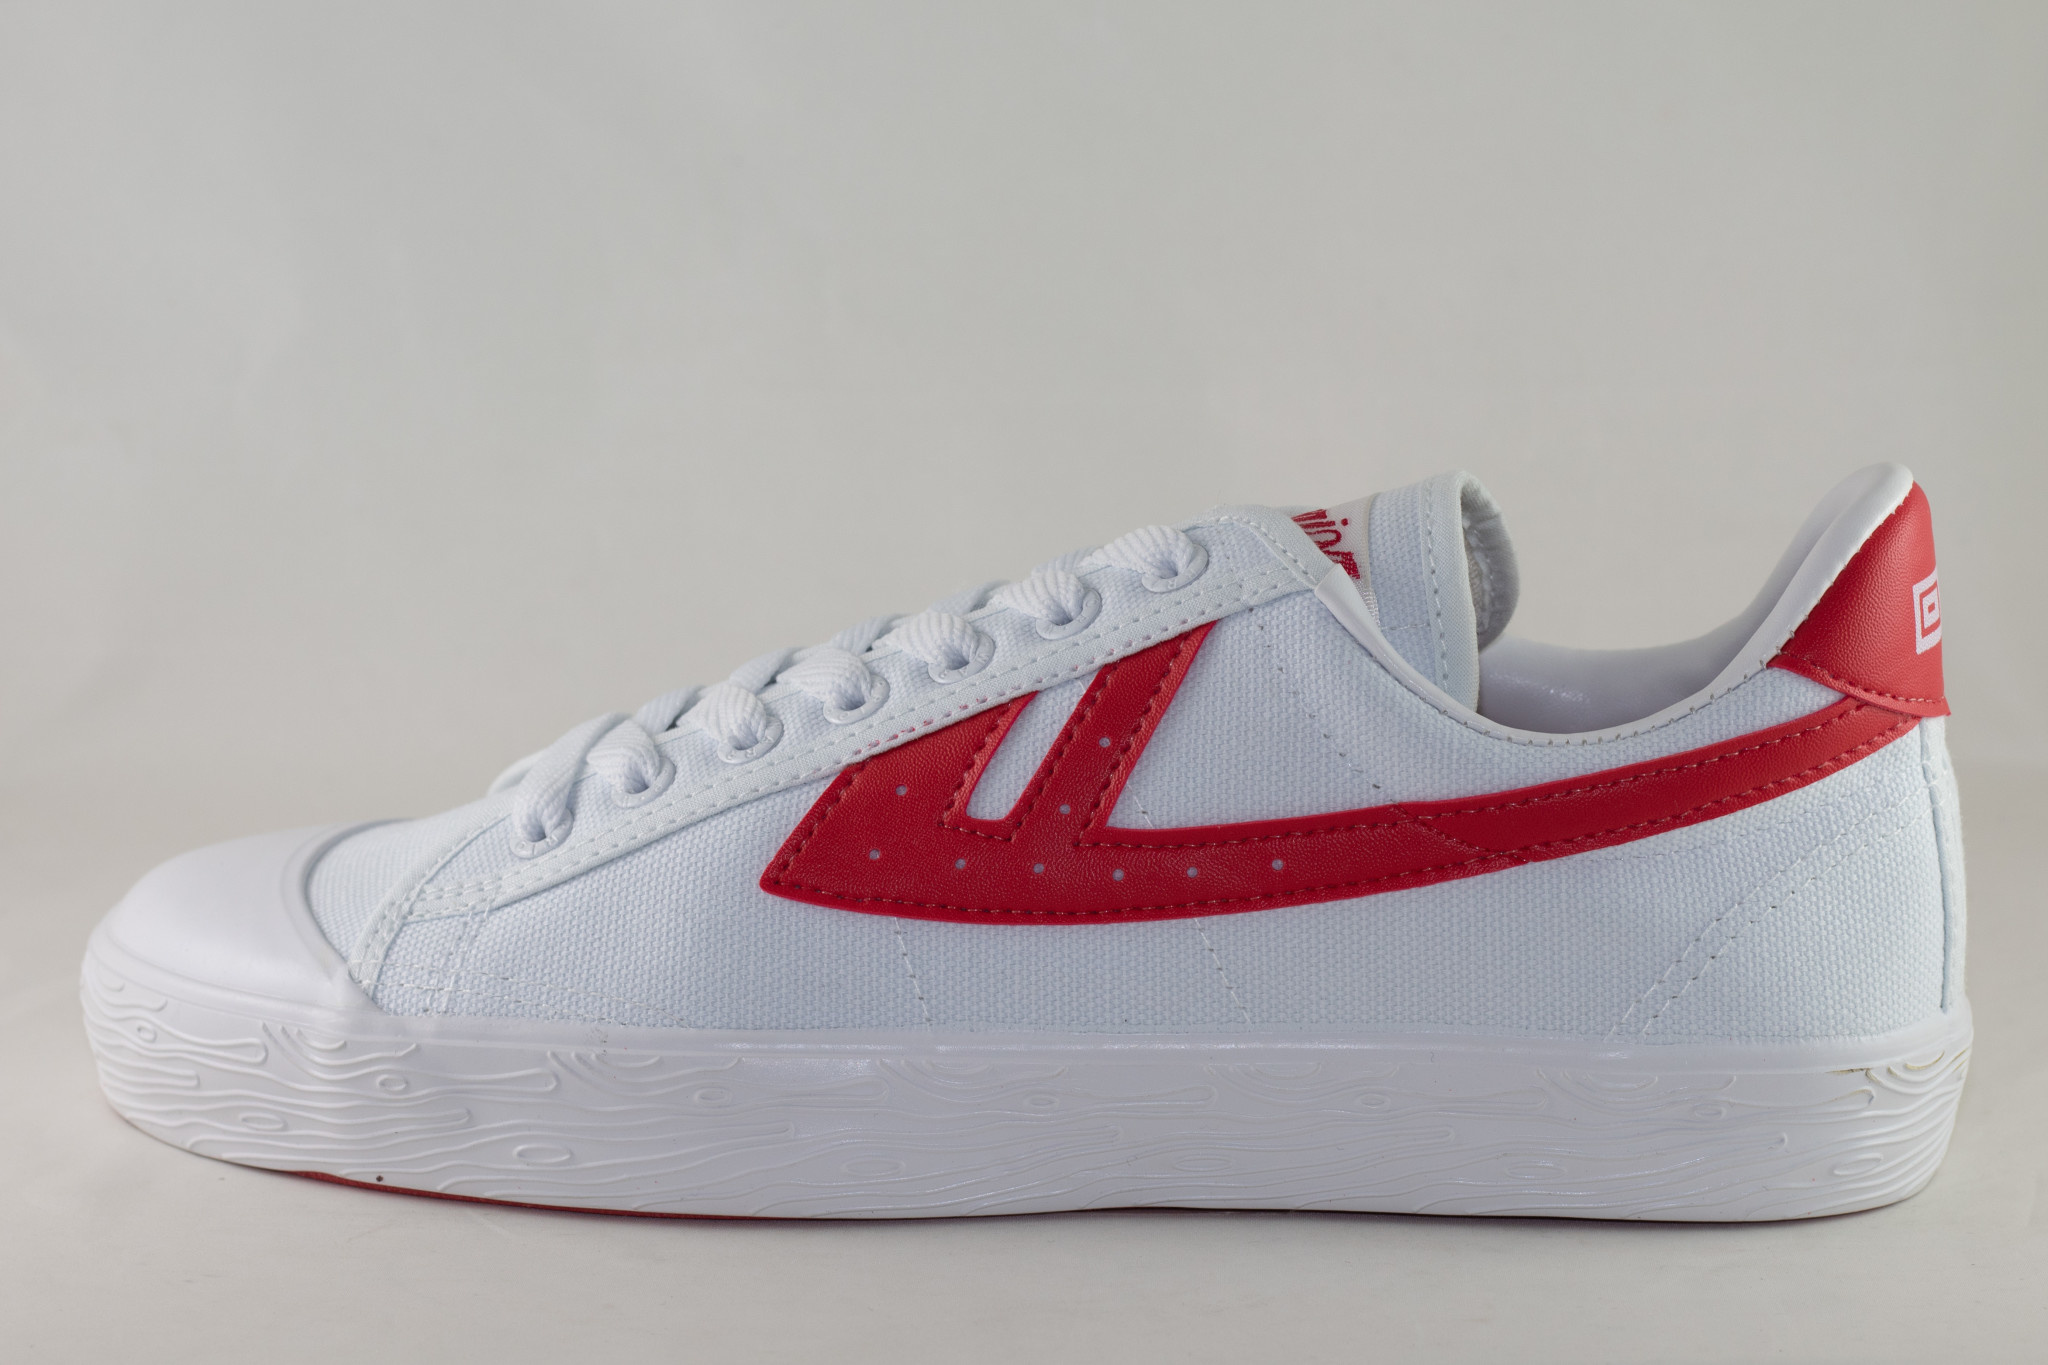 WARRIOR WB-1 White/ Red